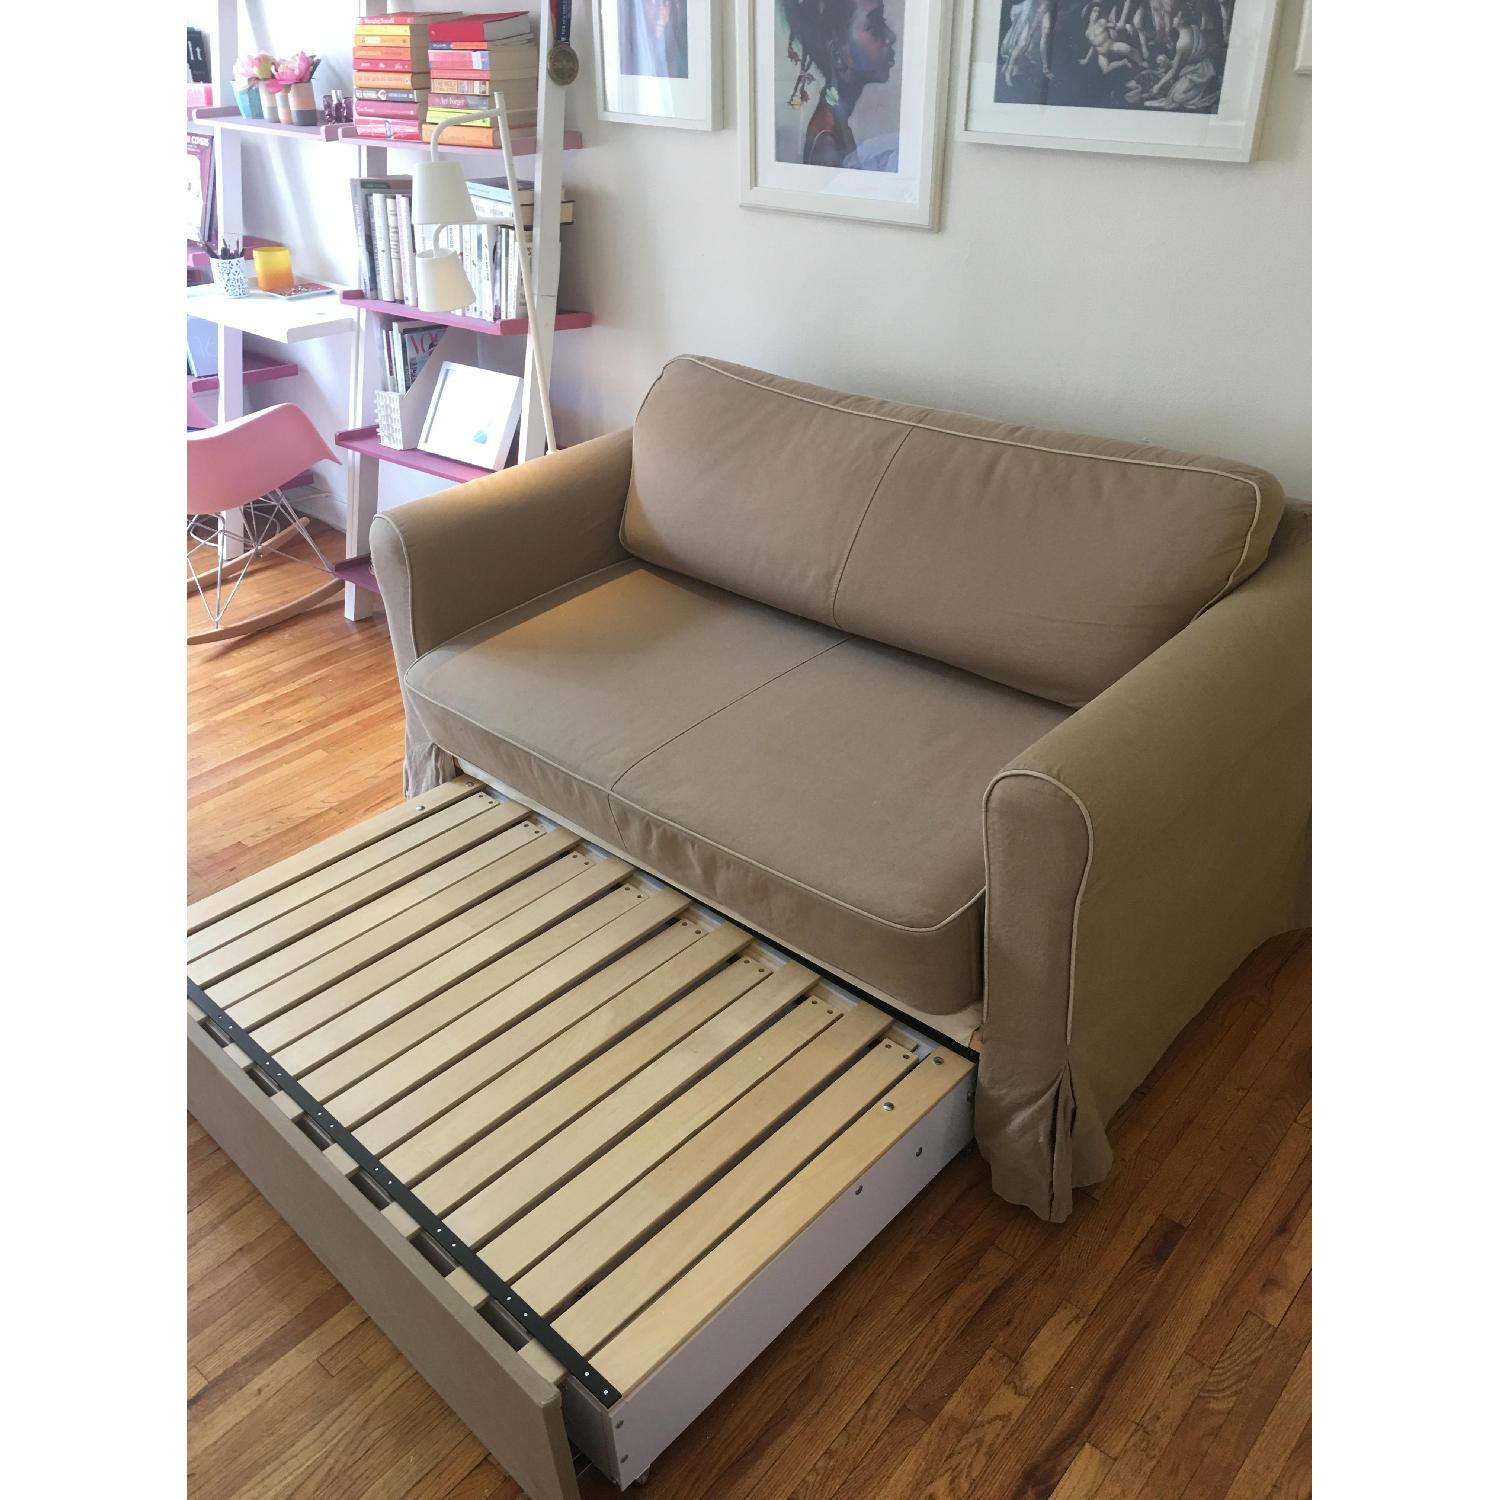 West Elm Beige Fold-Out Couch - image-3